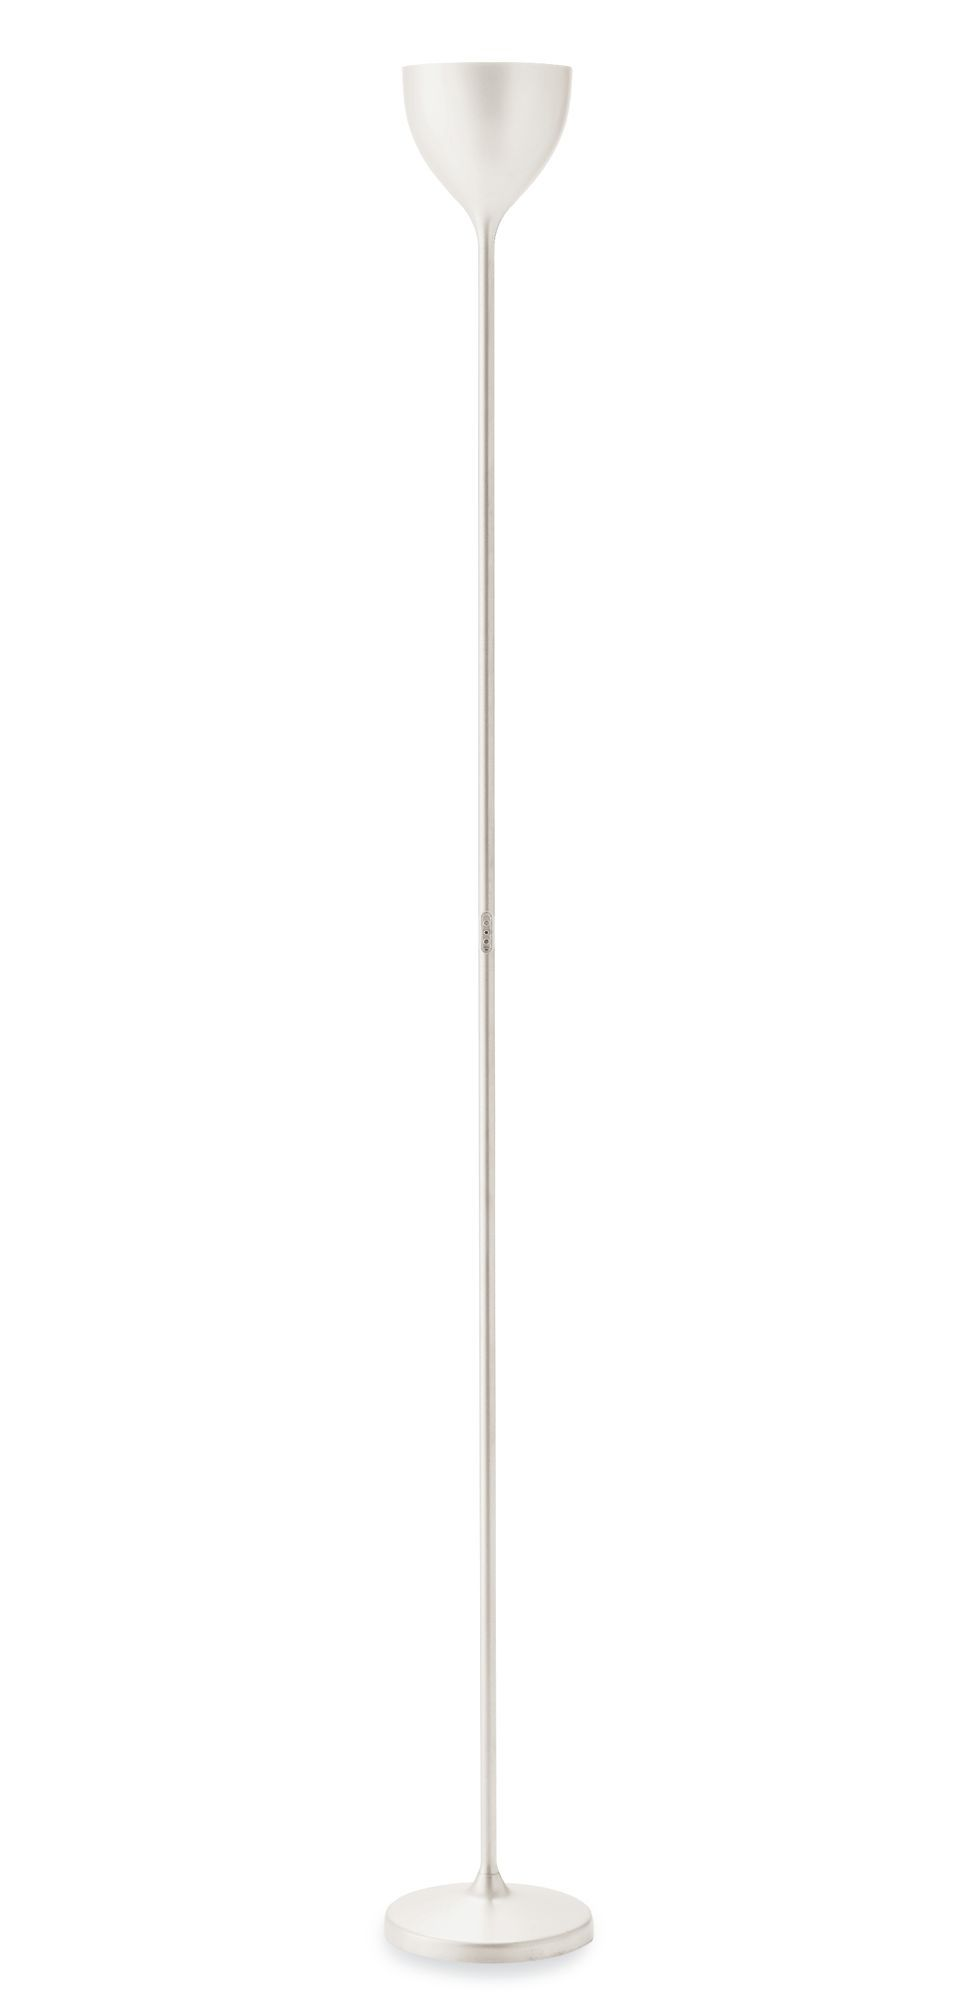 A modernist revision of the halogen torchiere the drink floor lamp a modernist revision of the halogen torchiere the drink floor lamp 2004 represents aloadofball Images